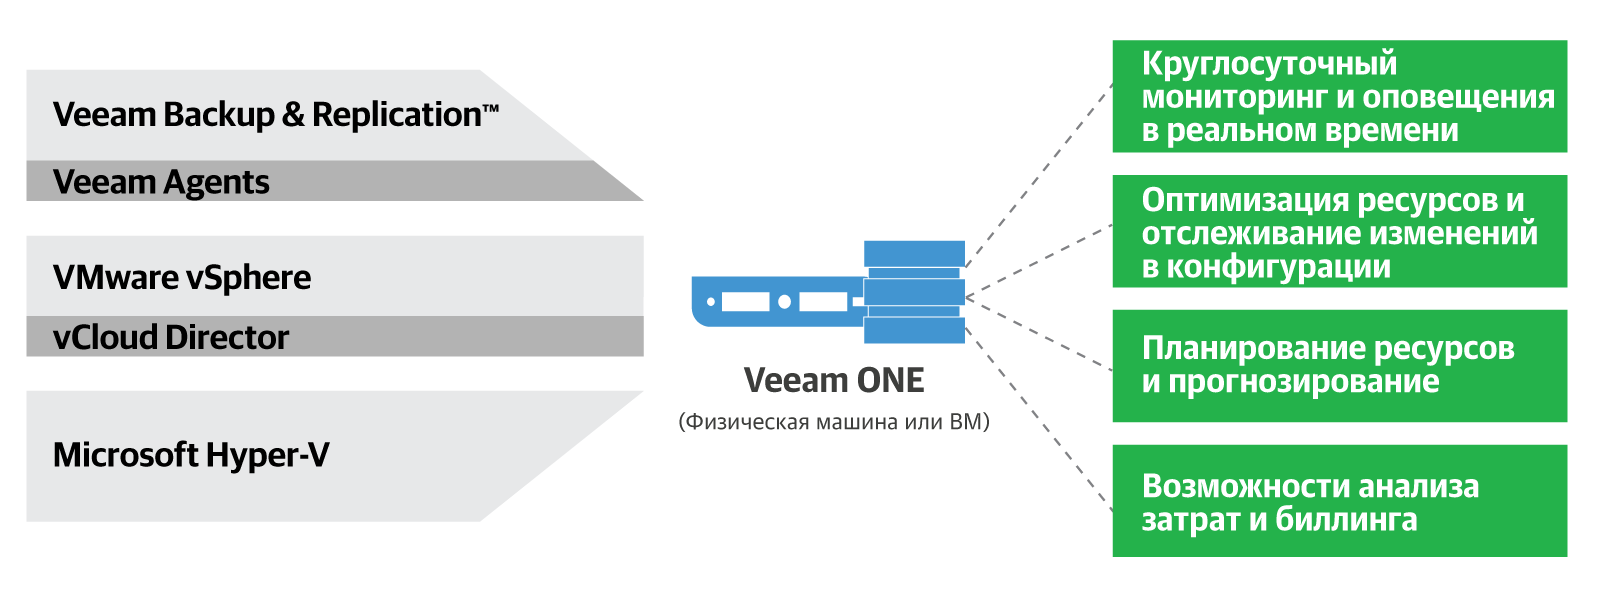 veeam_one_9.5_u2_ru.png